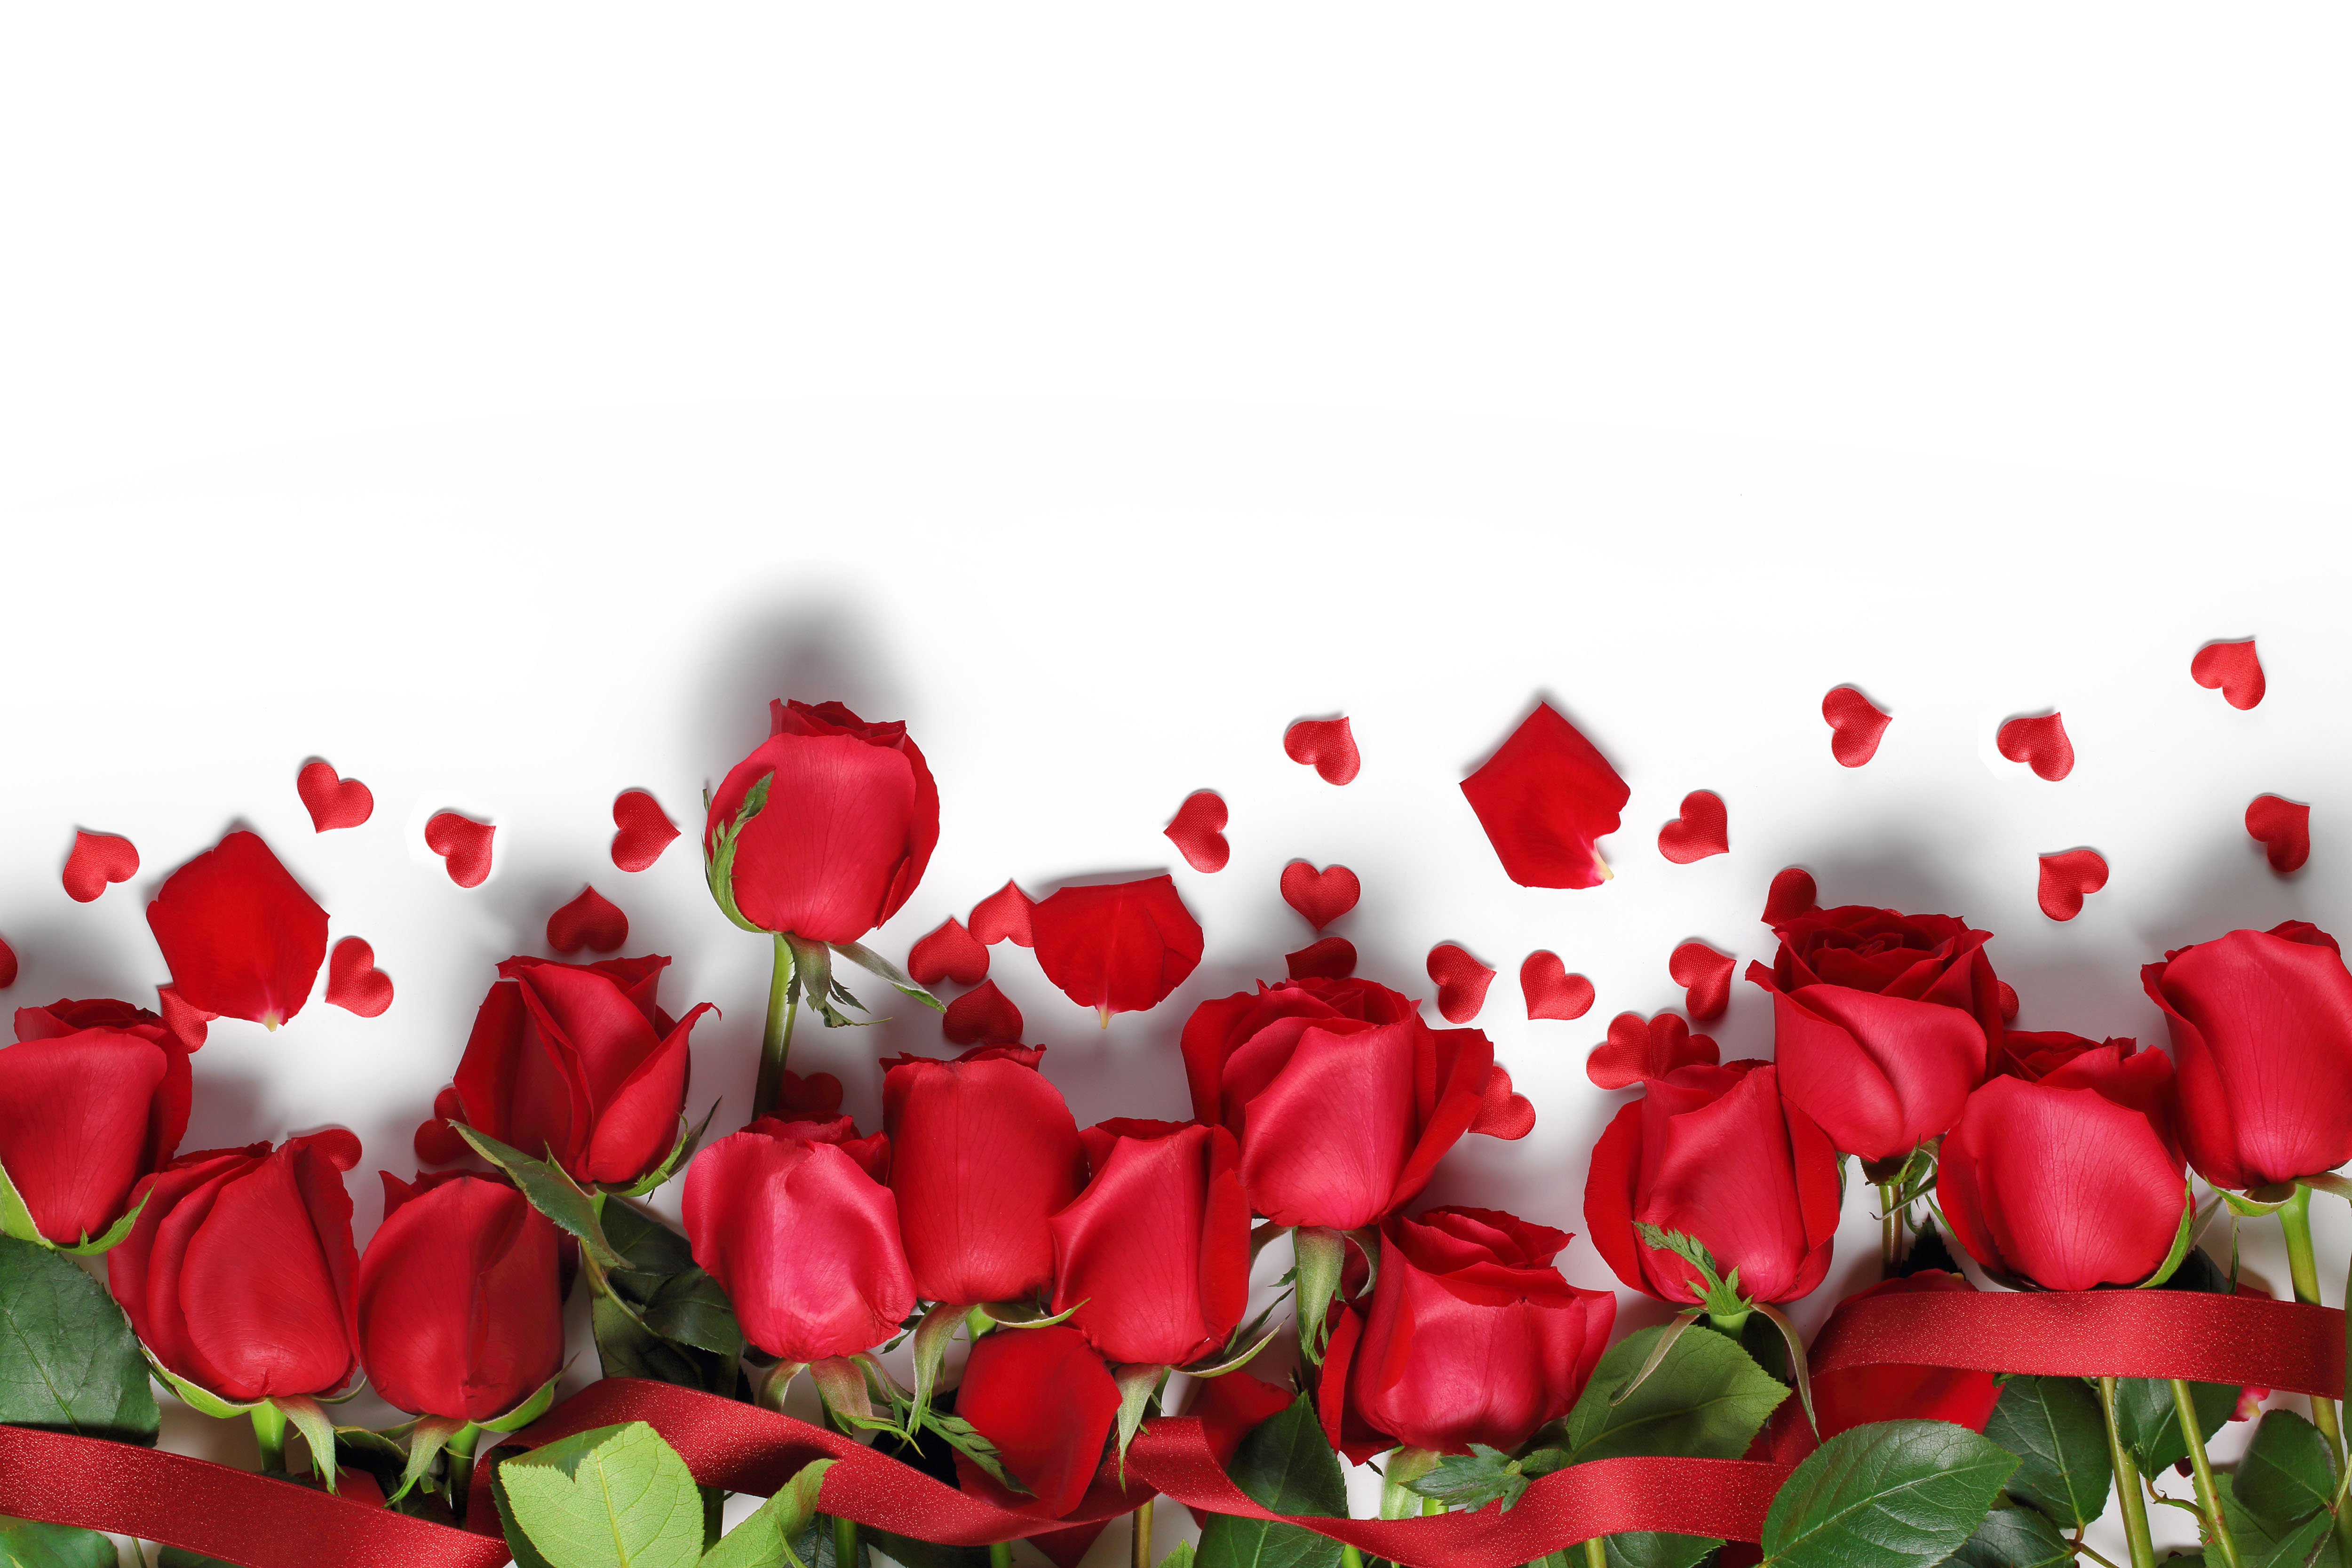 Red flowers hd nature wallpaper with rose picture hd wallpapers rose flower wallpapers pictures of red roses with white background mightylinksfo